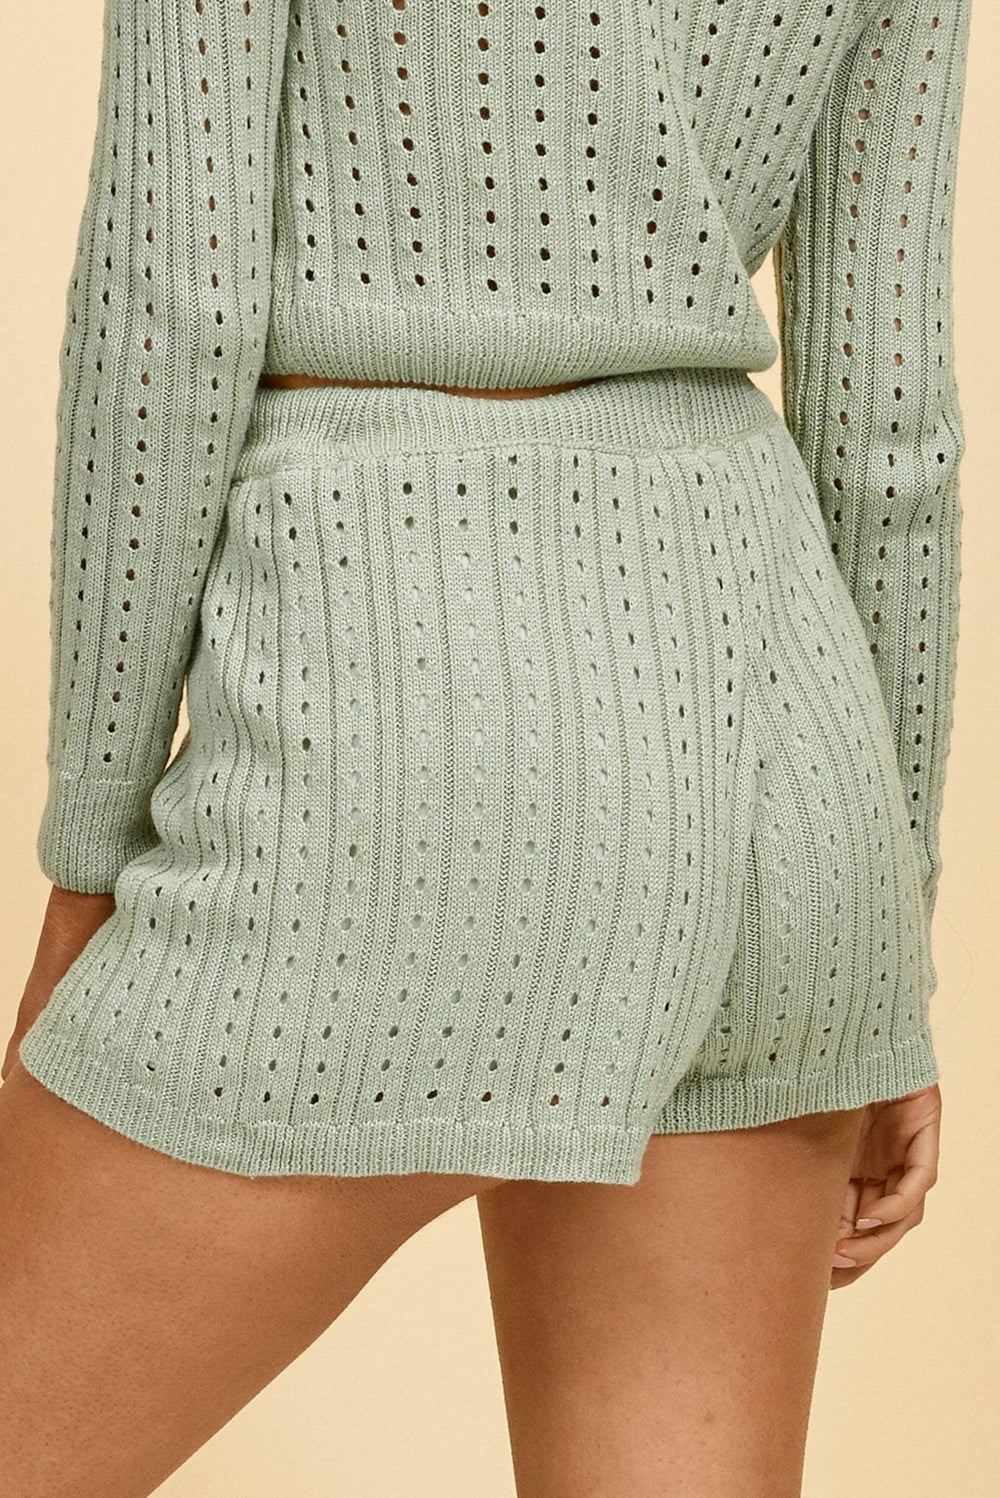 green knit shorts, knit set, knit two piece set